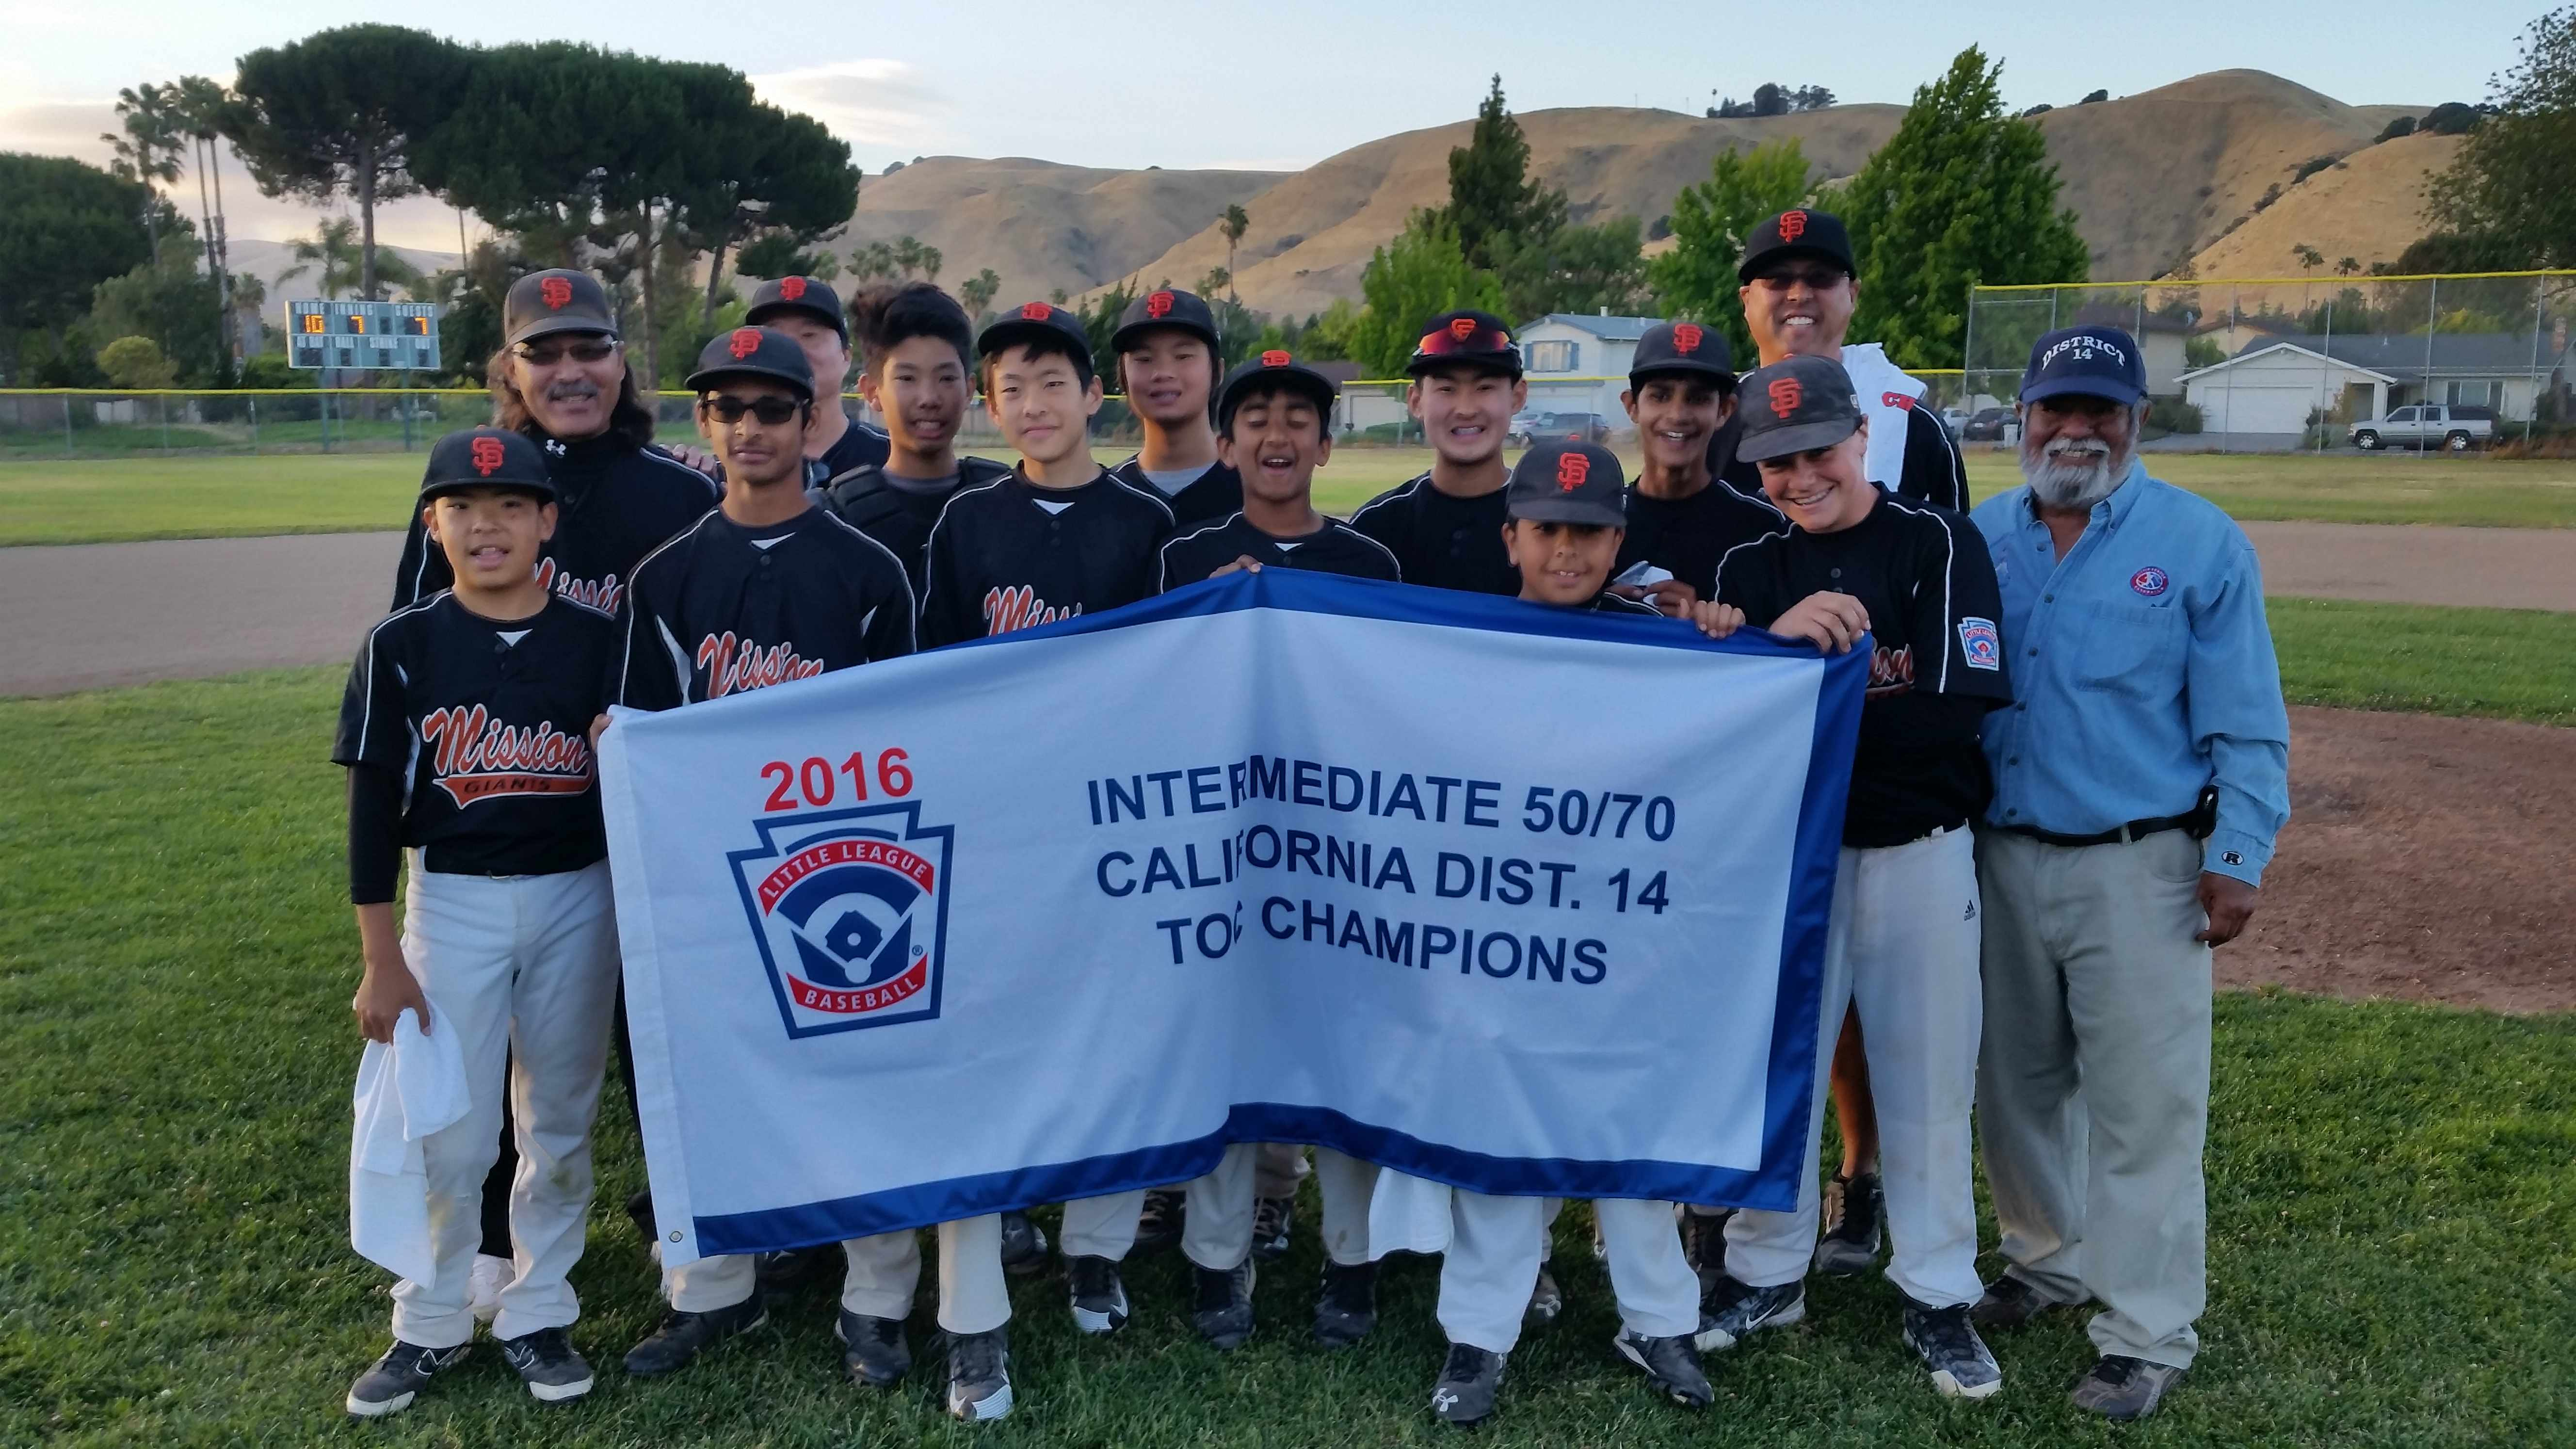 2016 District 14 Intermediate Chmapions